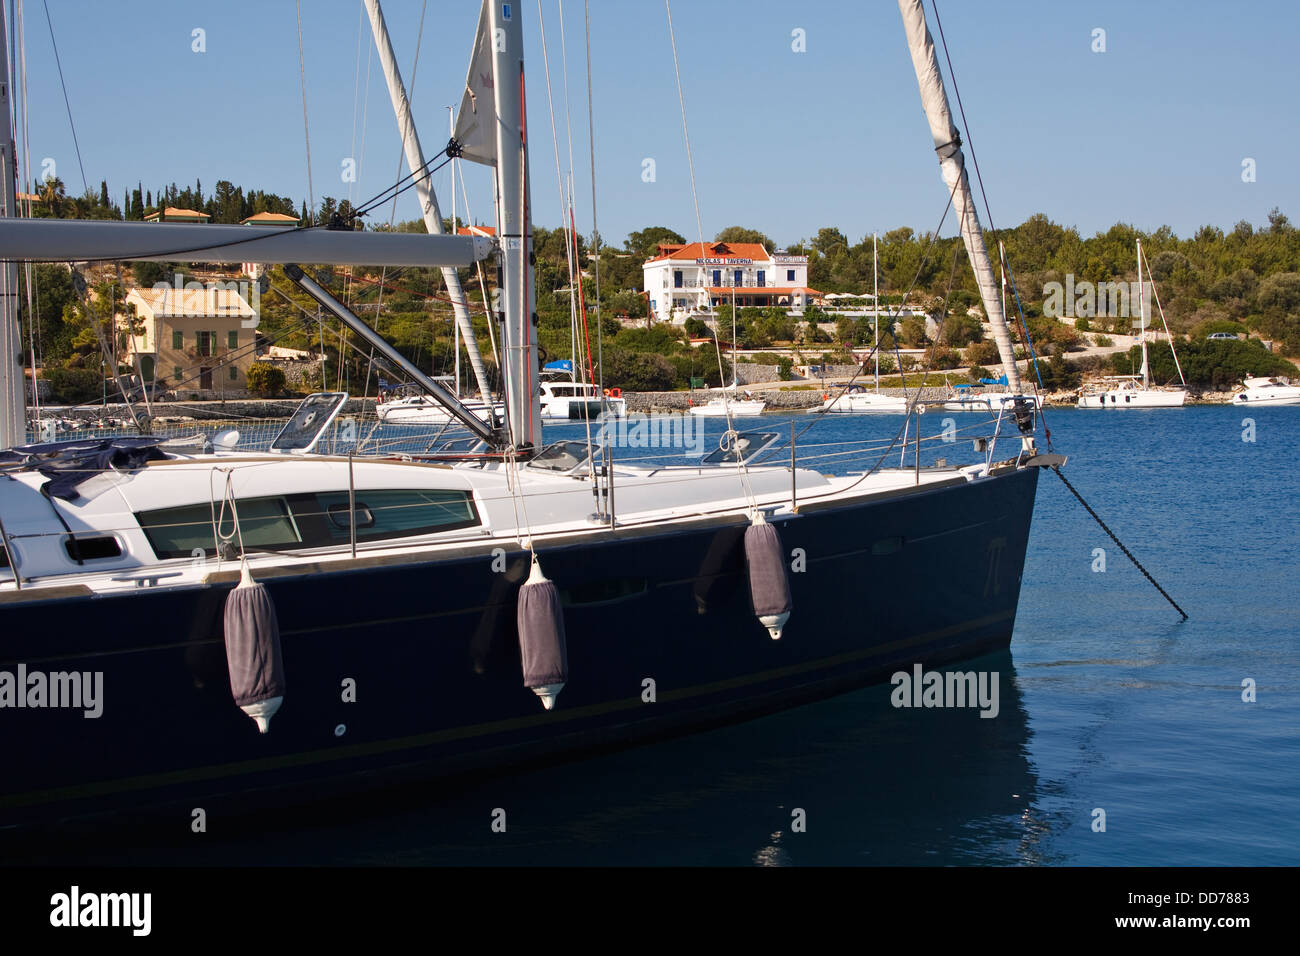 Boats in the harbour at Fiskardo, on the Greek island of Kefalonia. - Stock Image